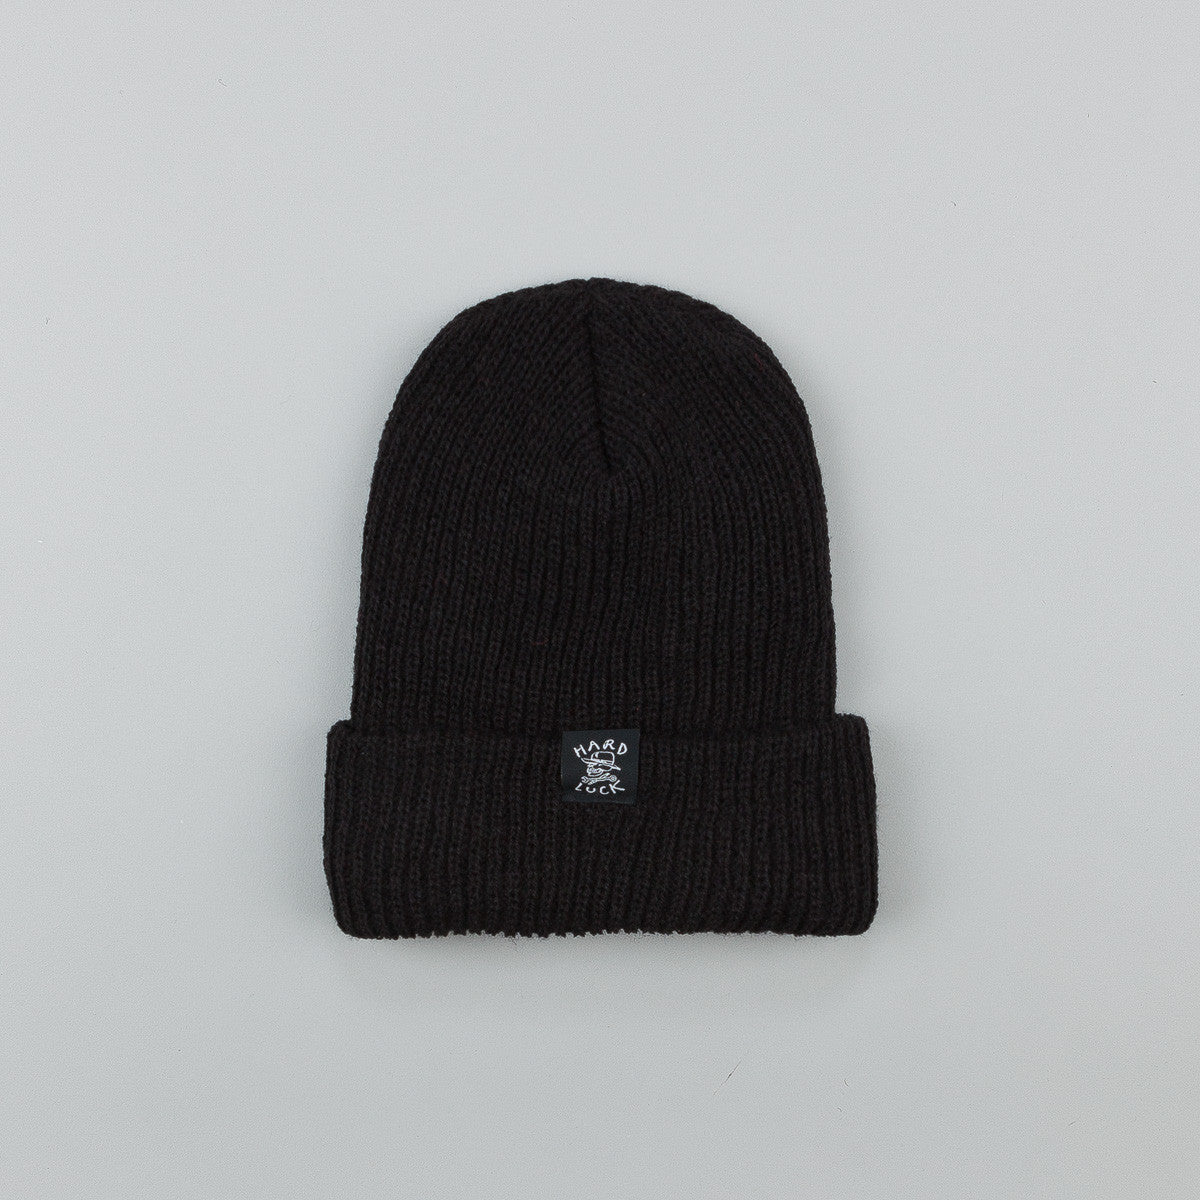 Hard Luck Beanie Black